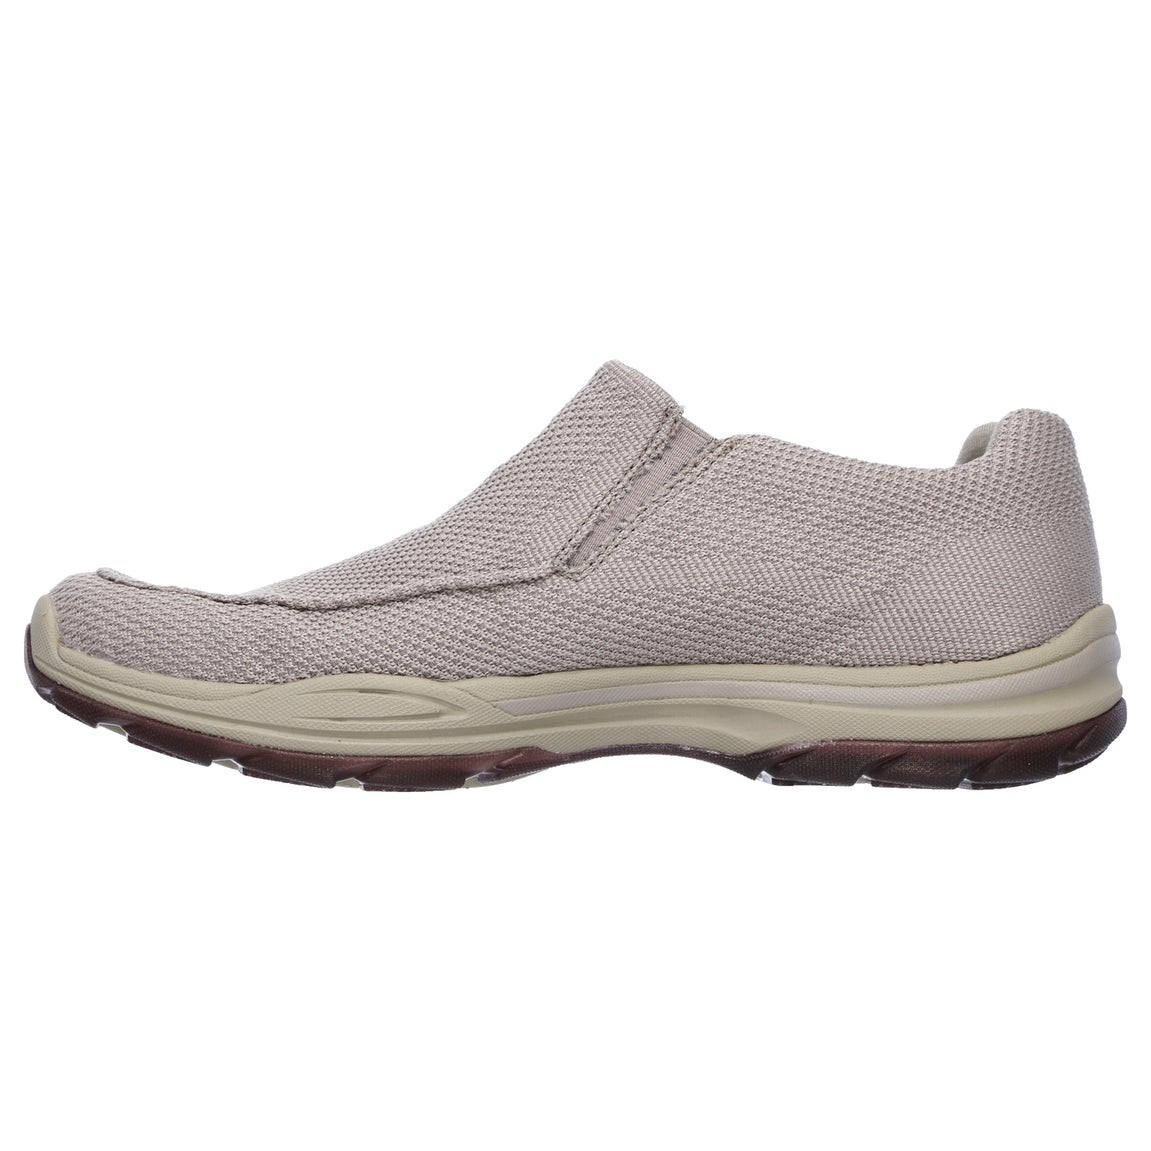 7d7286afeeab Shop Skechers 65082 TPE Men s ELMENT-VENGO Loafer - Free Shipping Today -  Overstock - 14436449